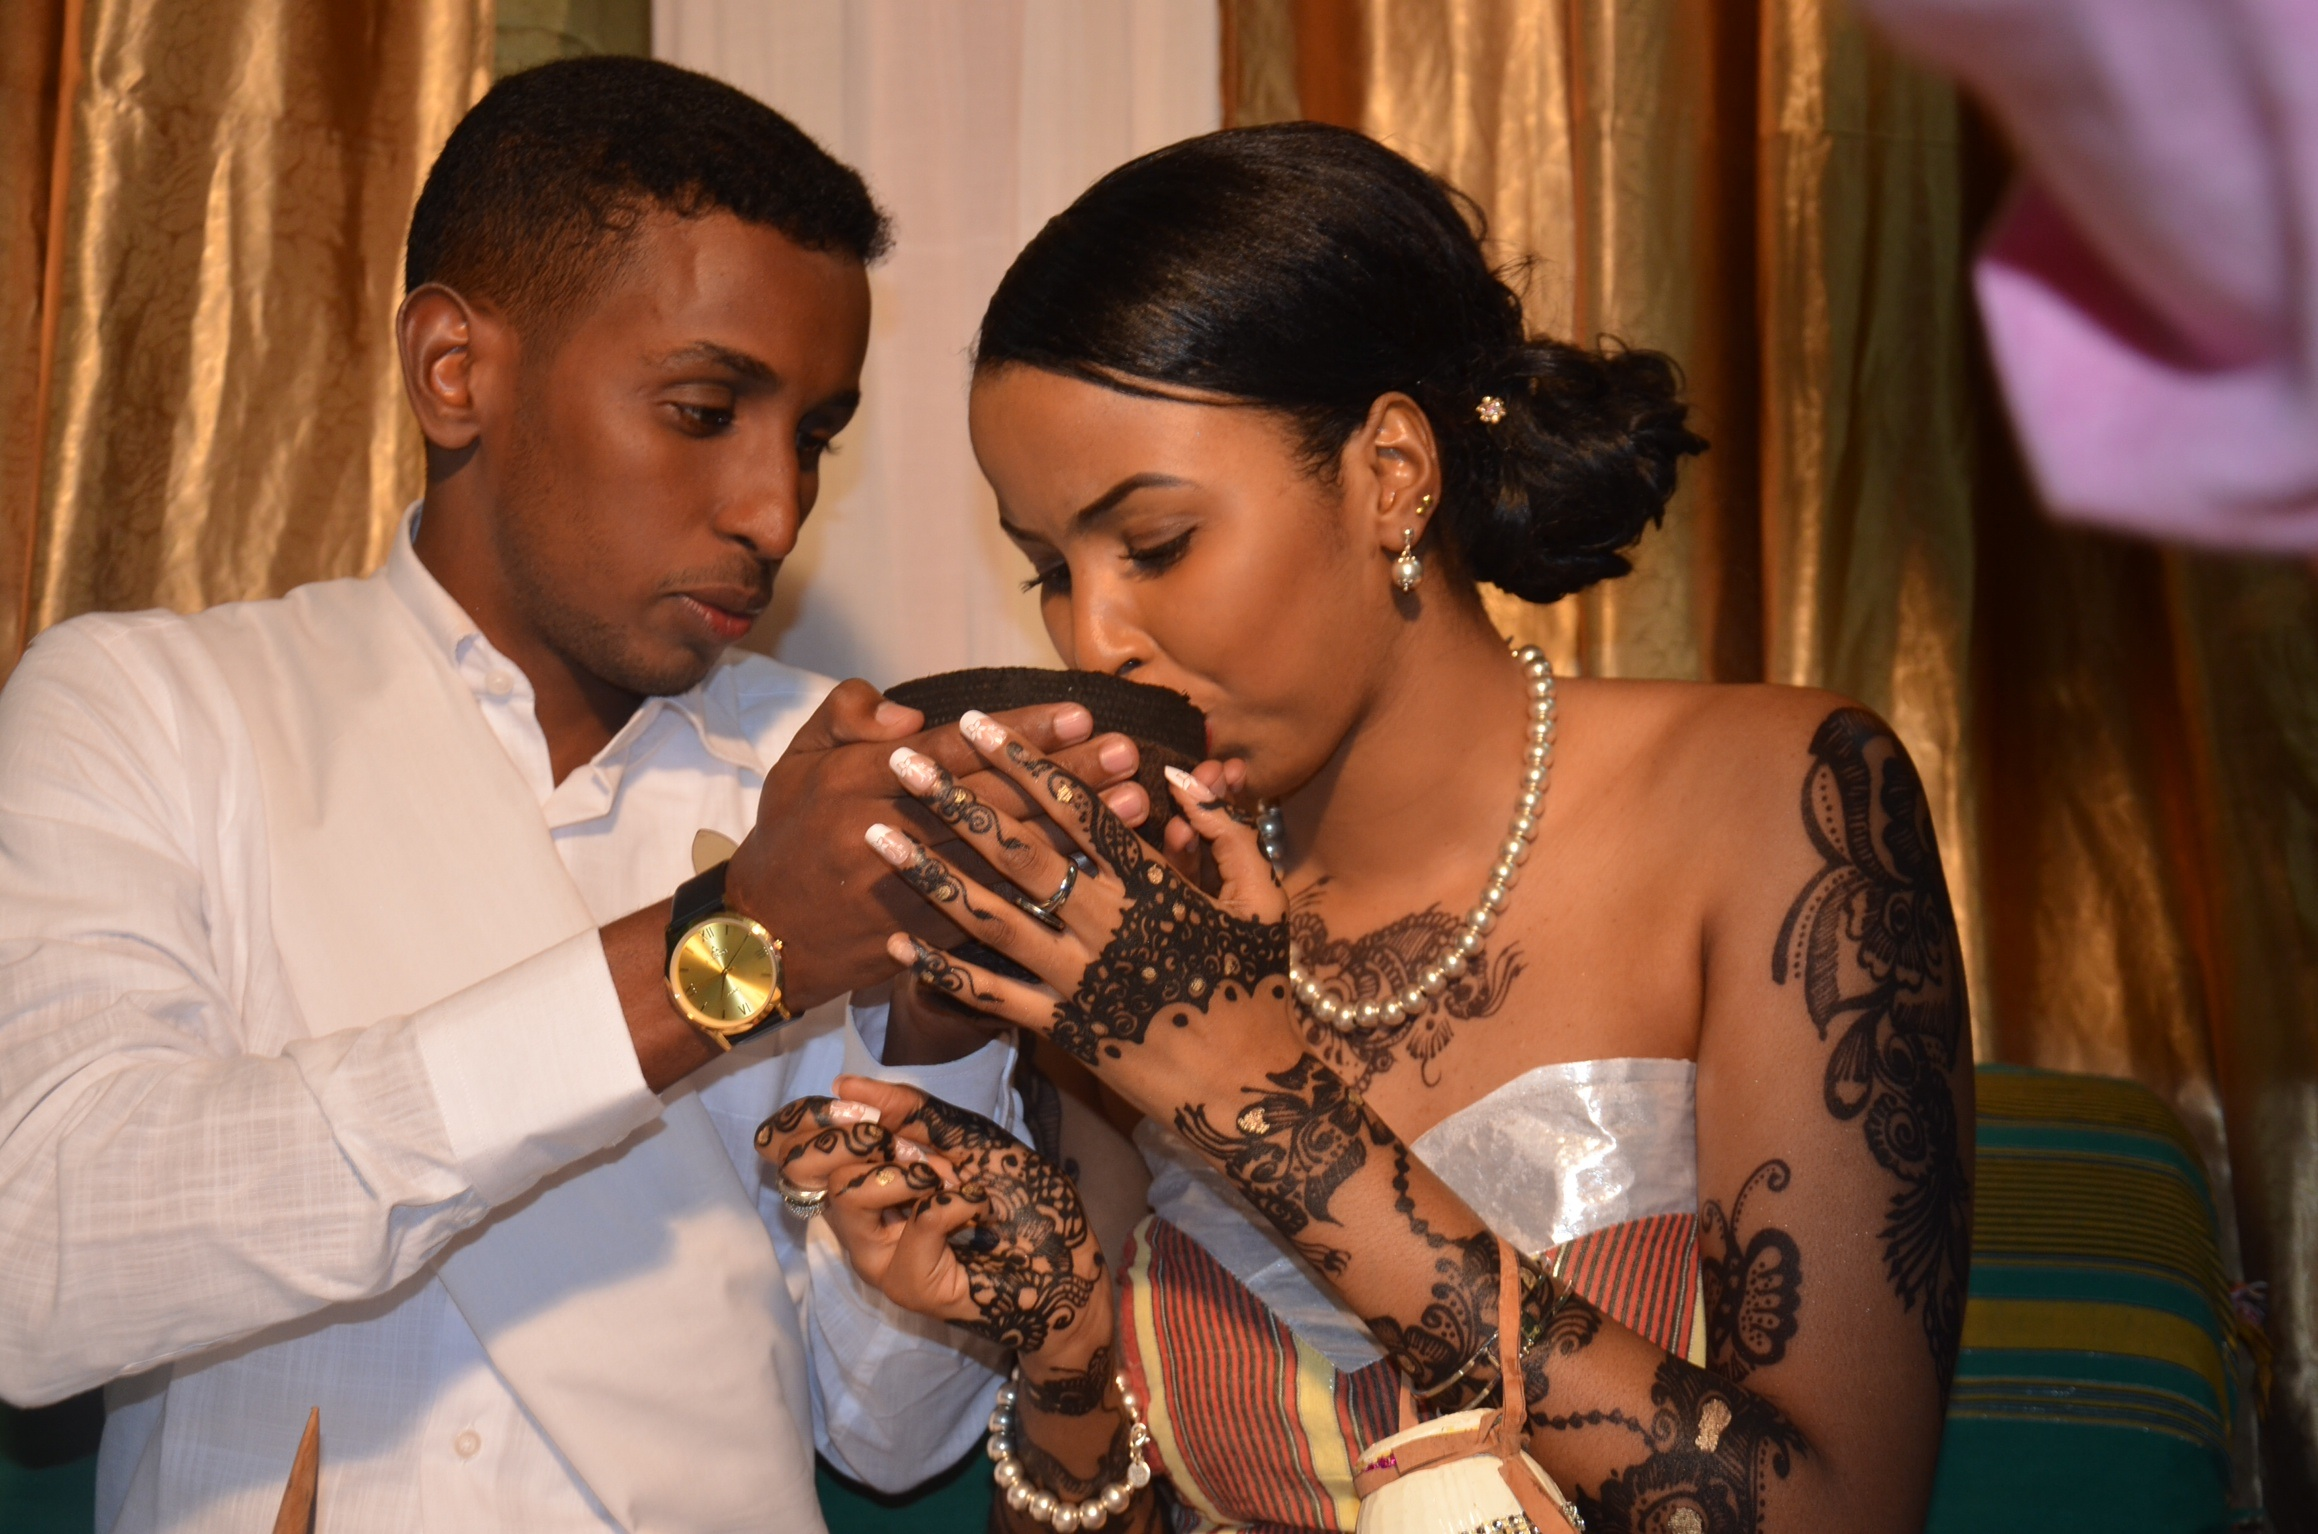 Somali wedding traditions